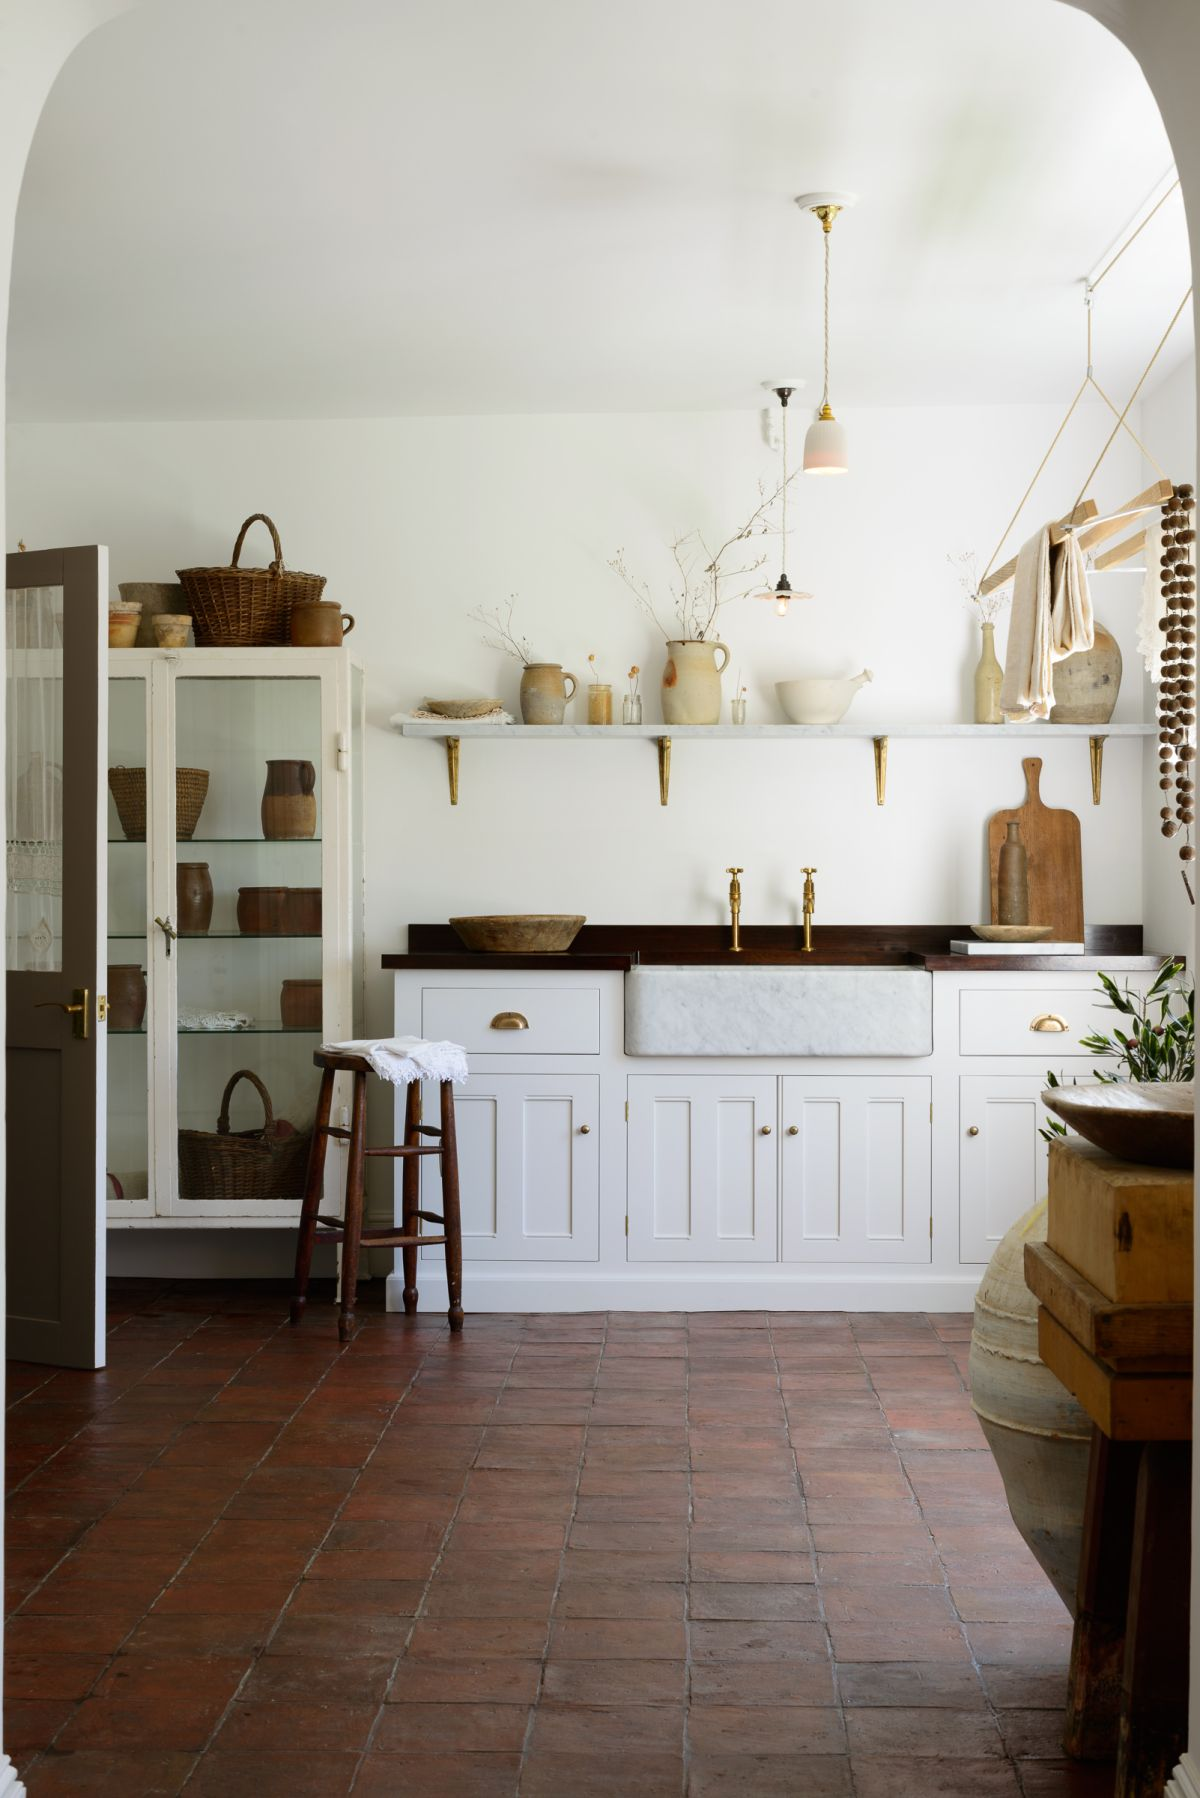 Kitchen Interior Design Concept Ideas to give you a starting point